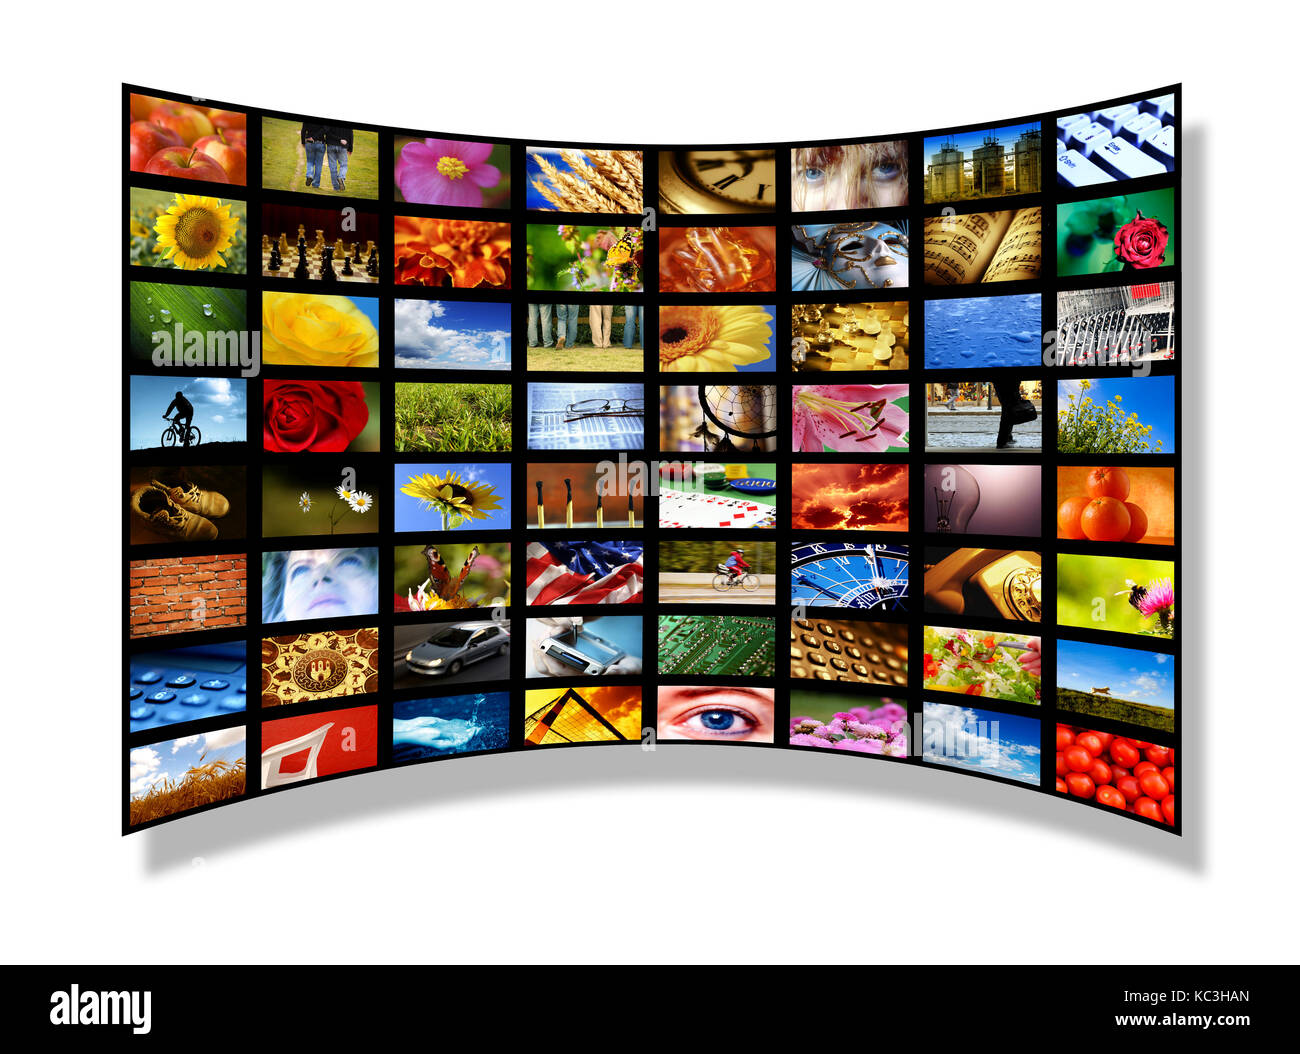 many screens with images - Stock Image